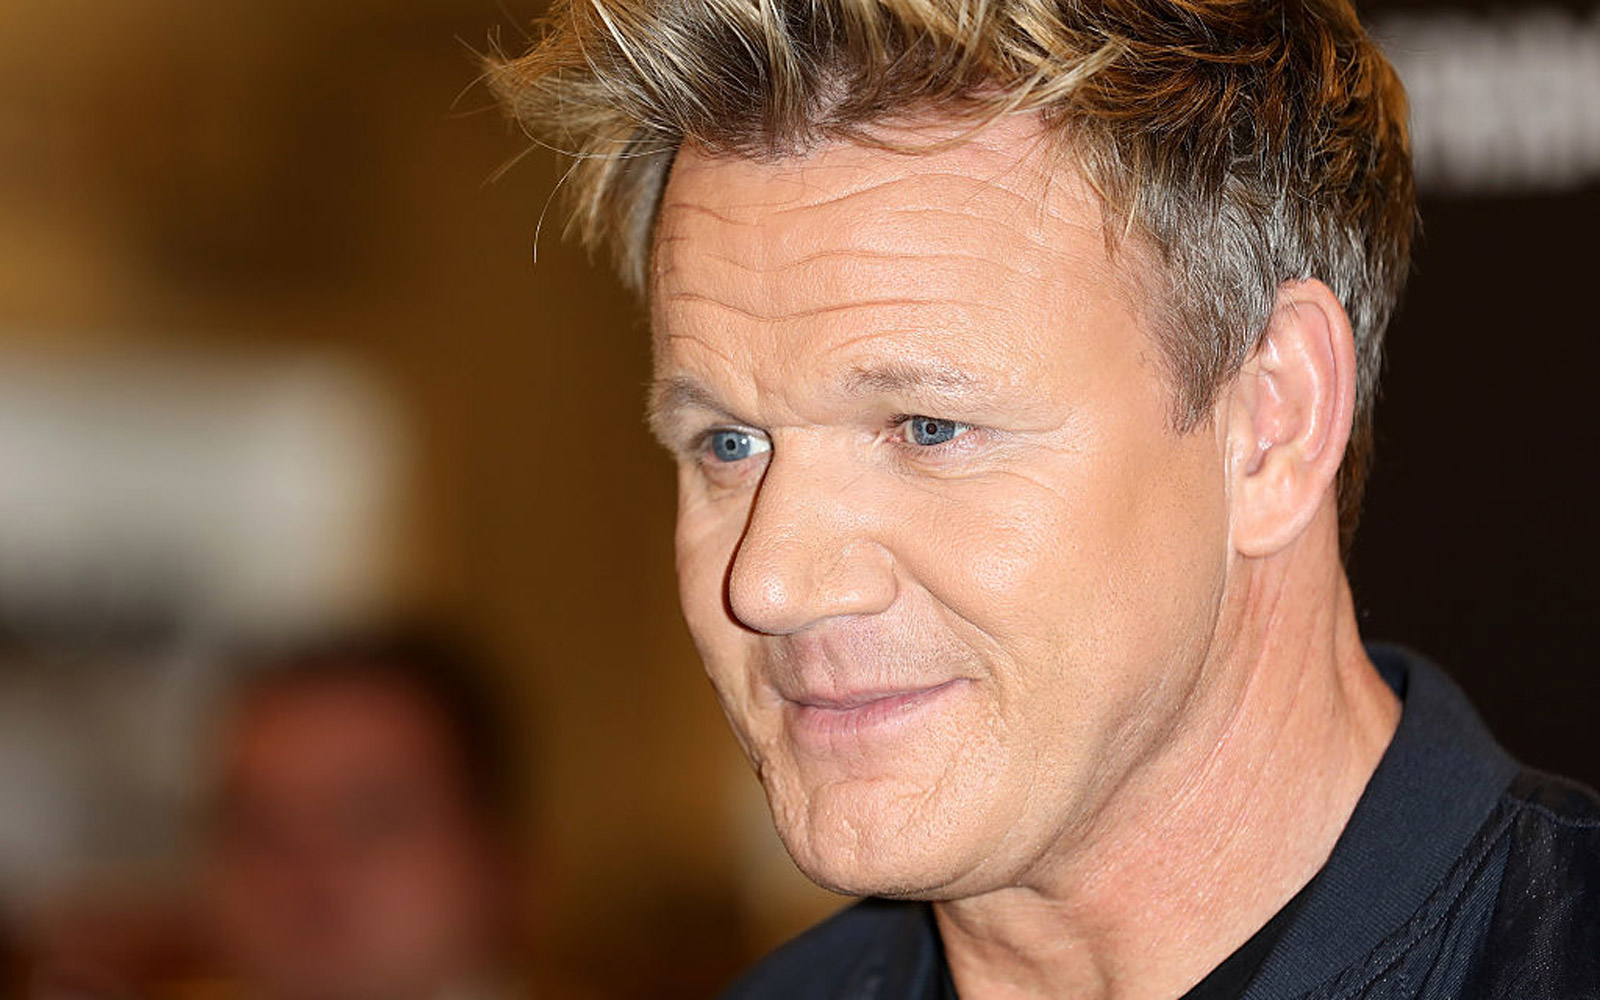 Watch Gordon Ramsay Eat the Food He Hates the Most